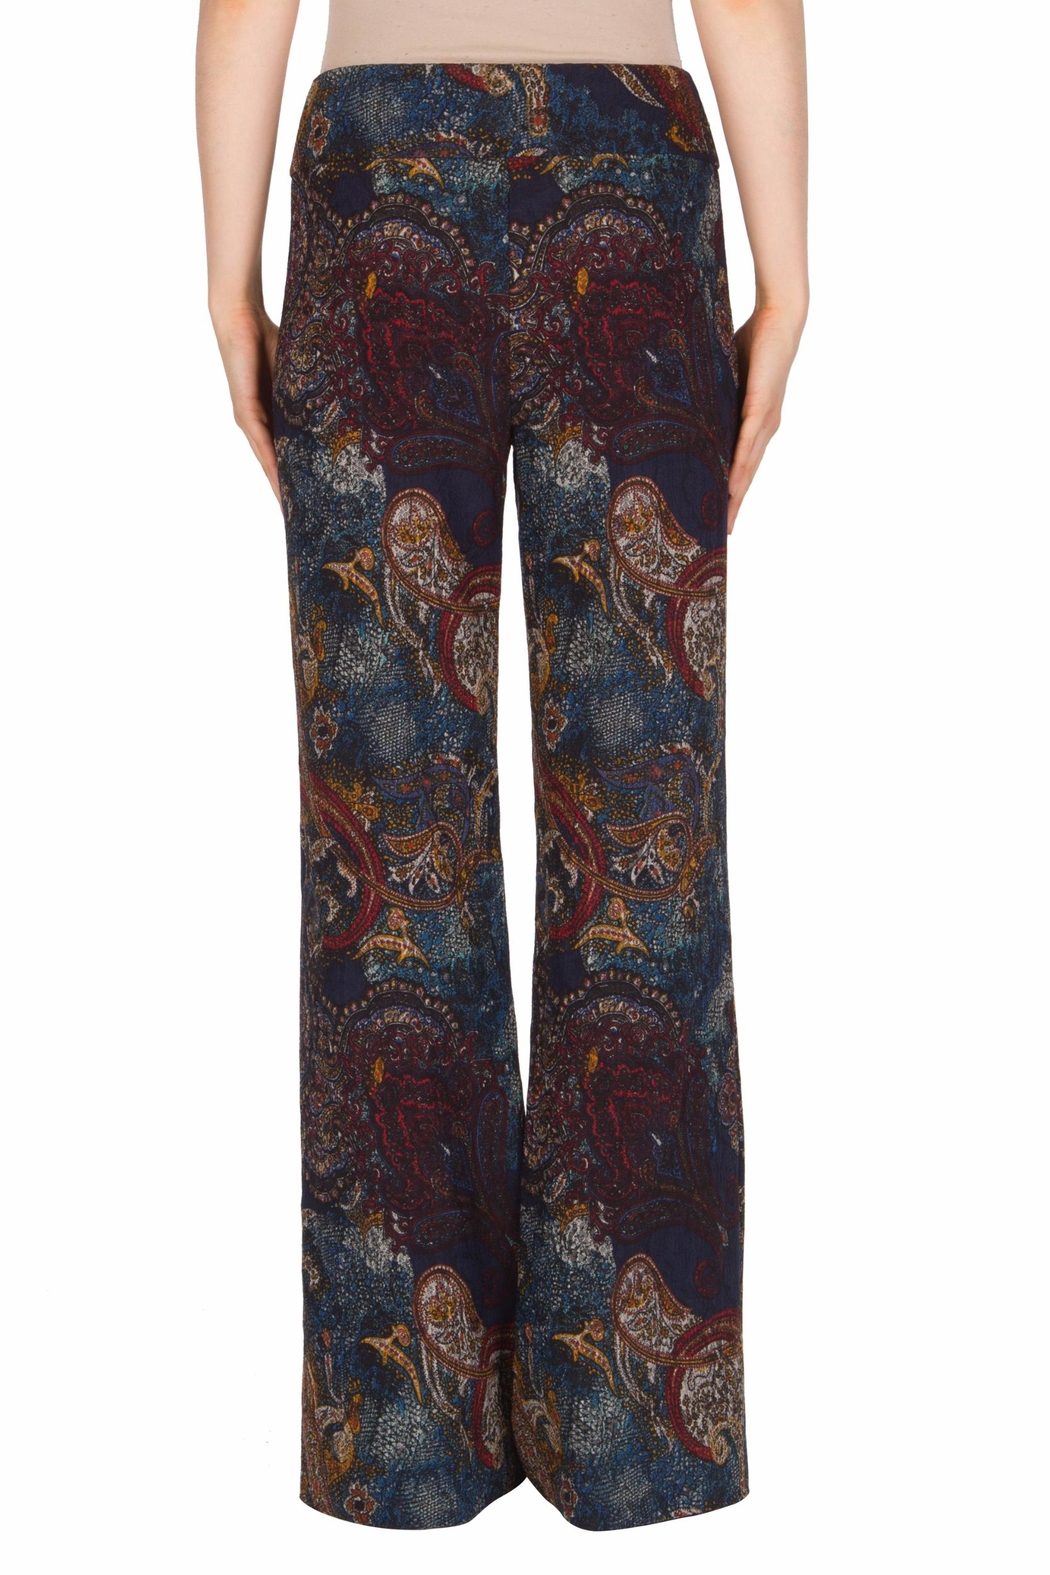 Joseph Ribkoff Paisley Taper Pant - Side Cropped Image